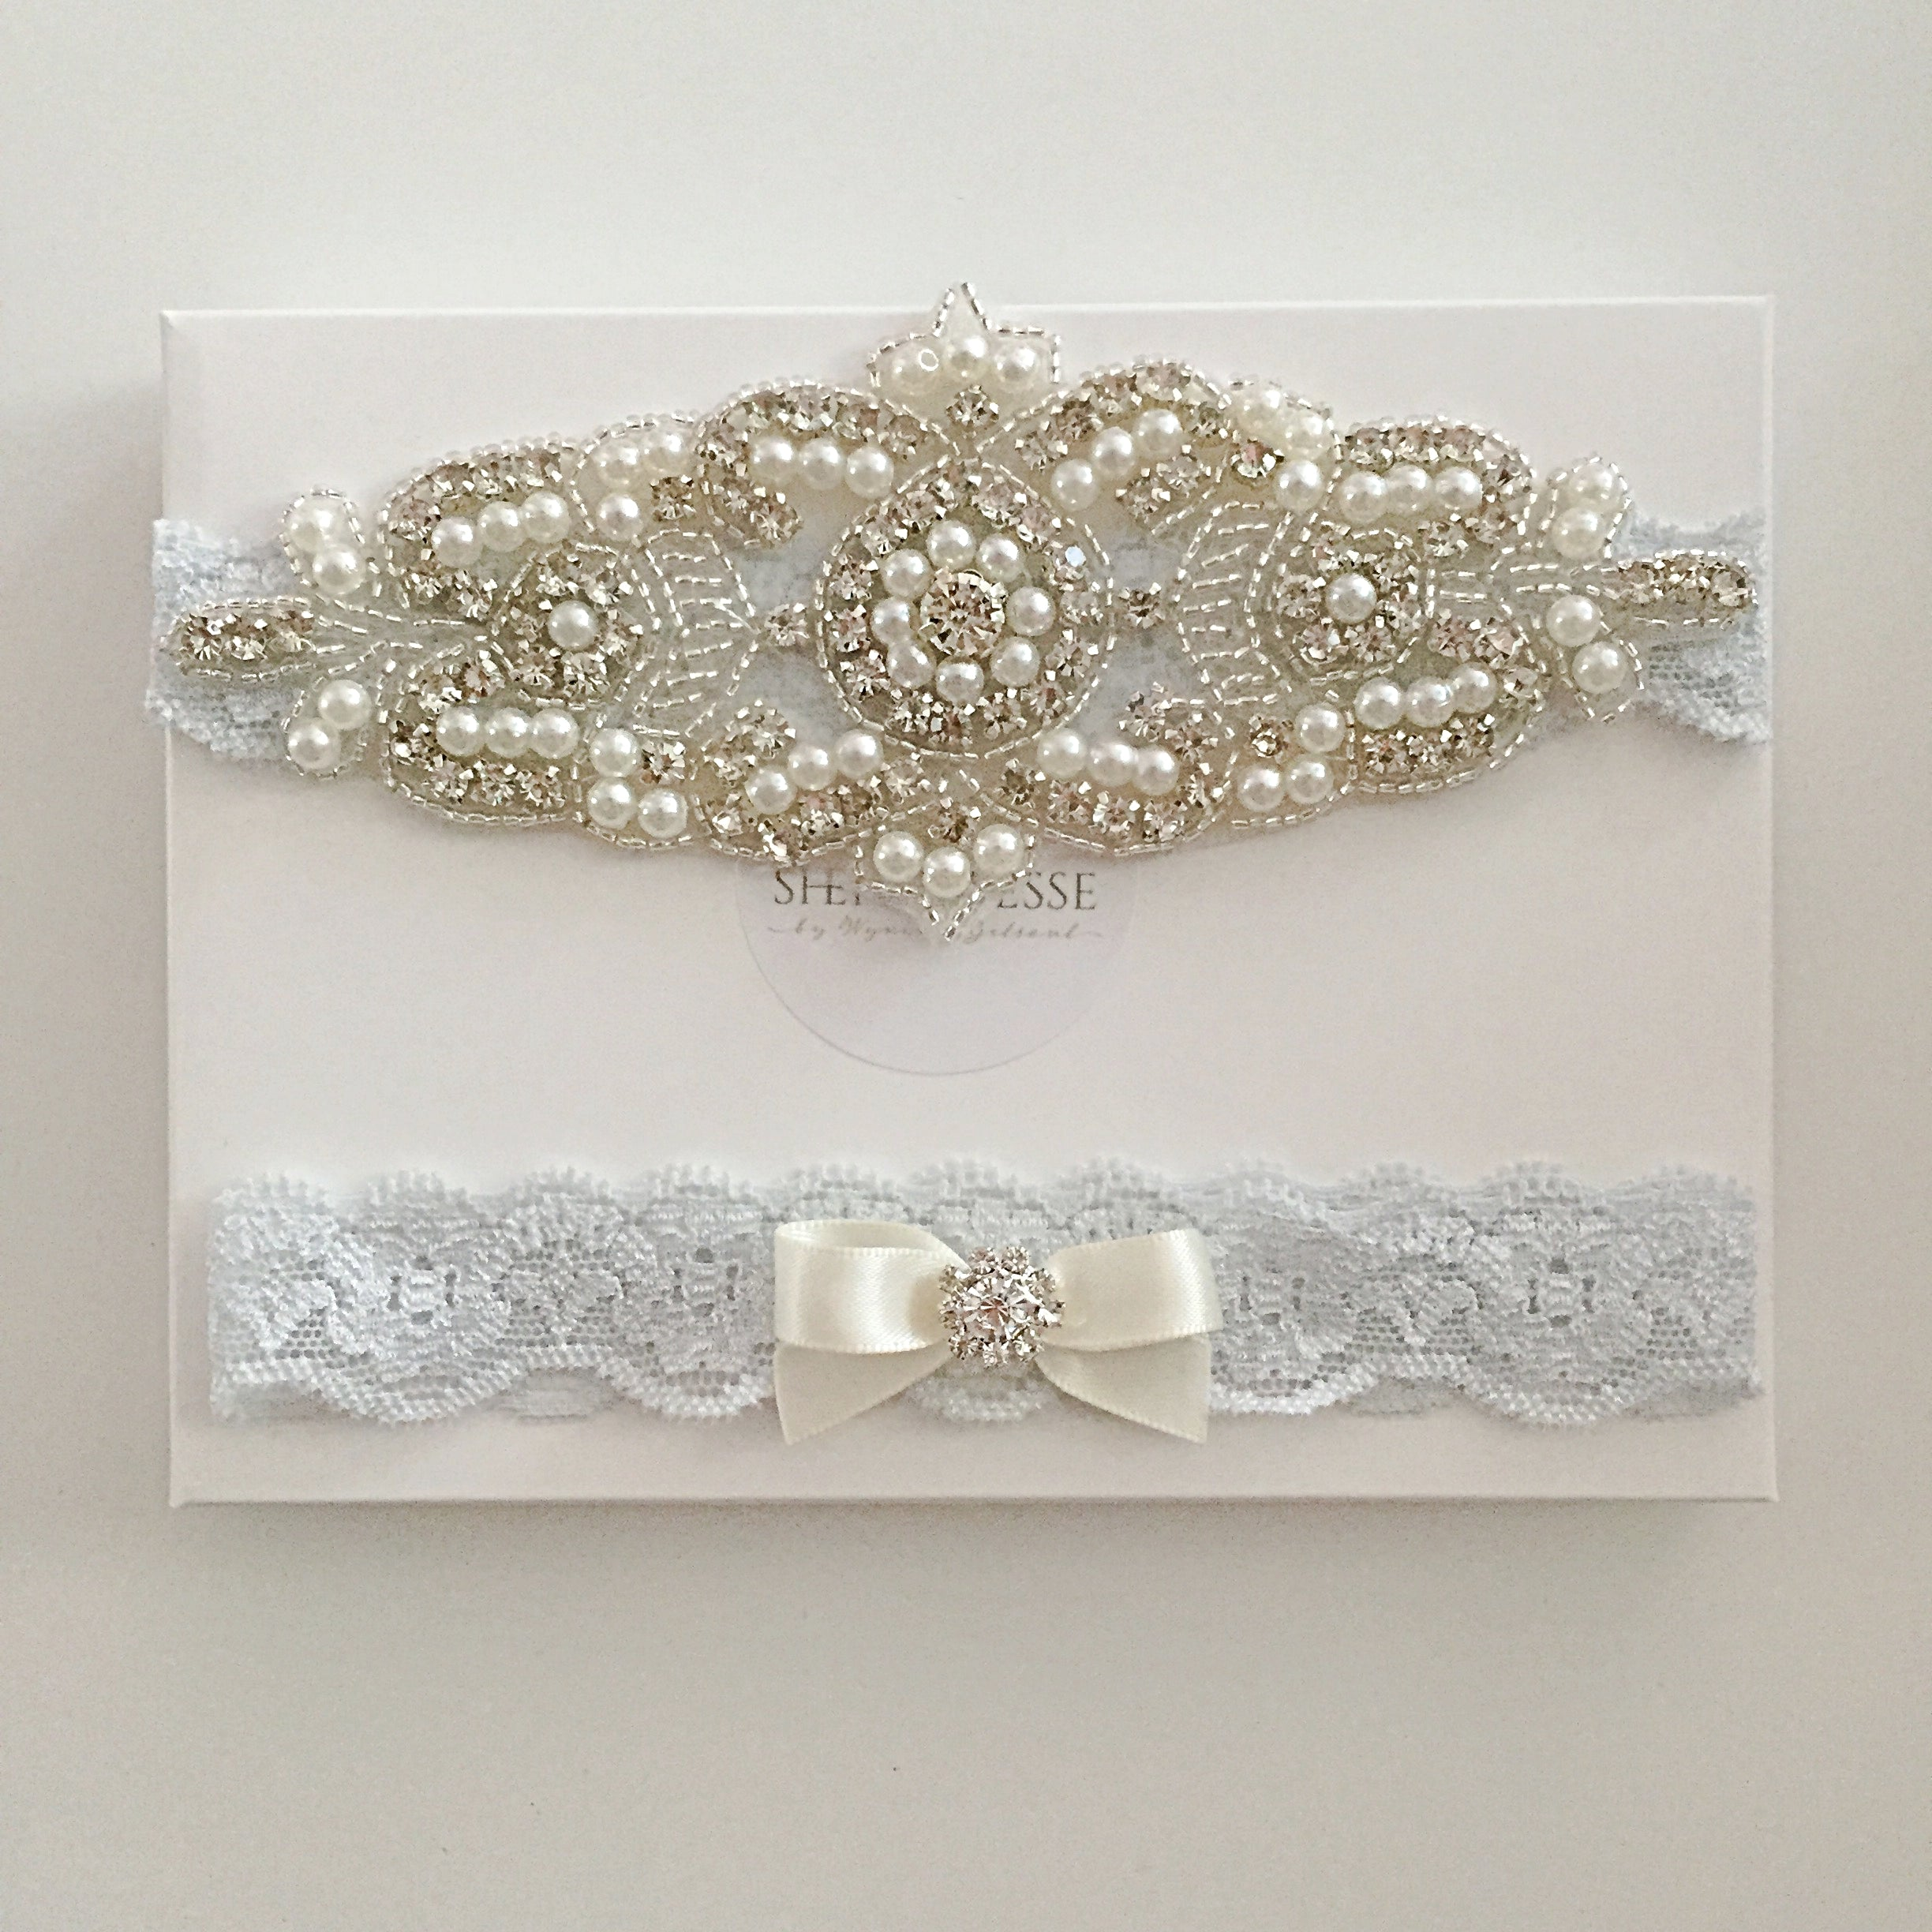 wedding garter australia, blue wedding garter sydney, something blue wedding, lace bridal garter australia, blue lace garter set, pearl crystal wedding garter set